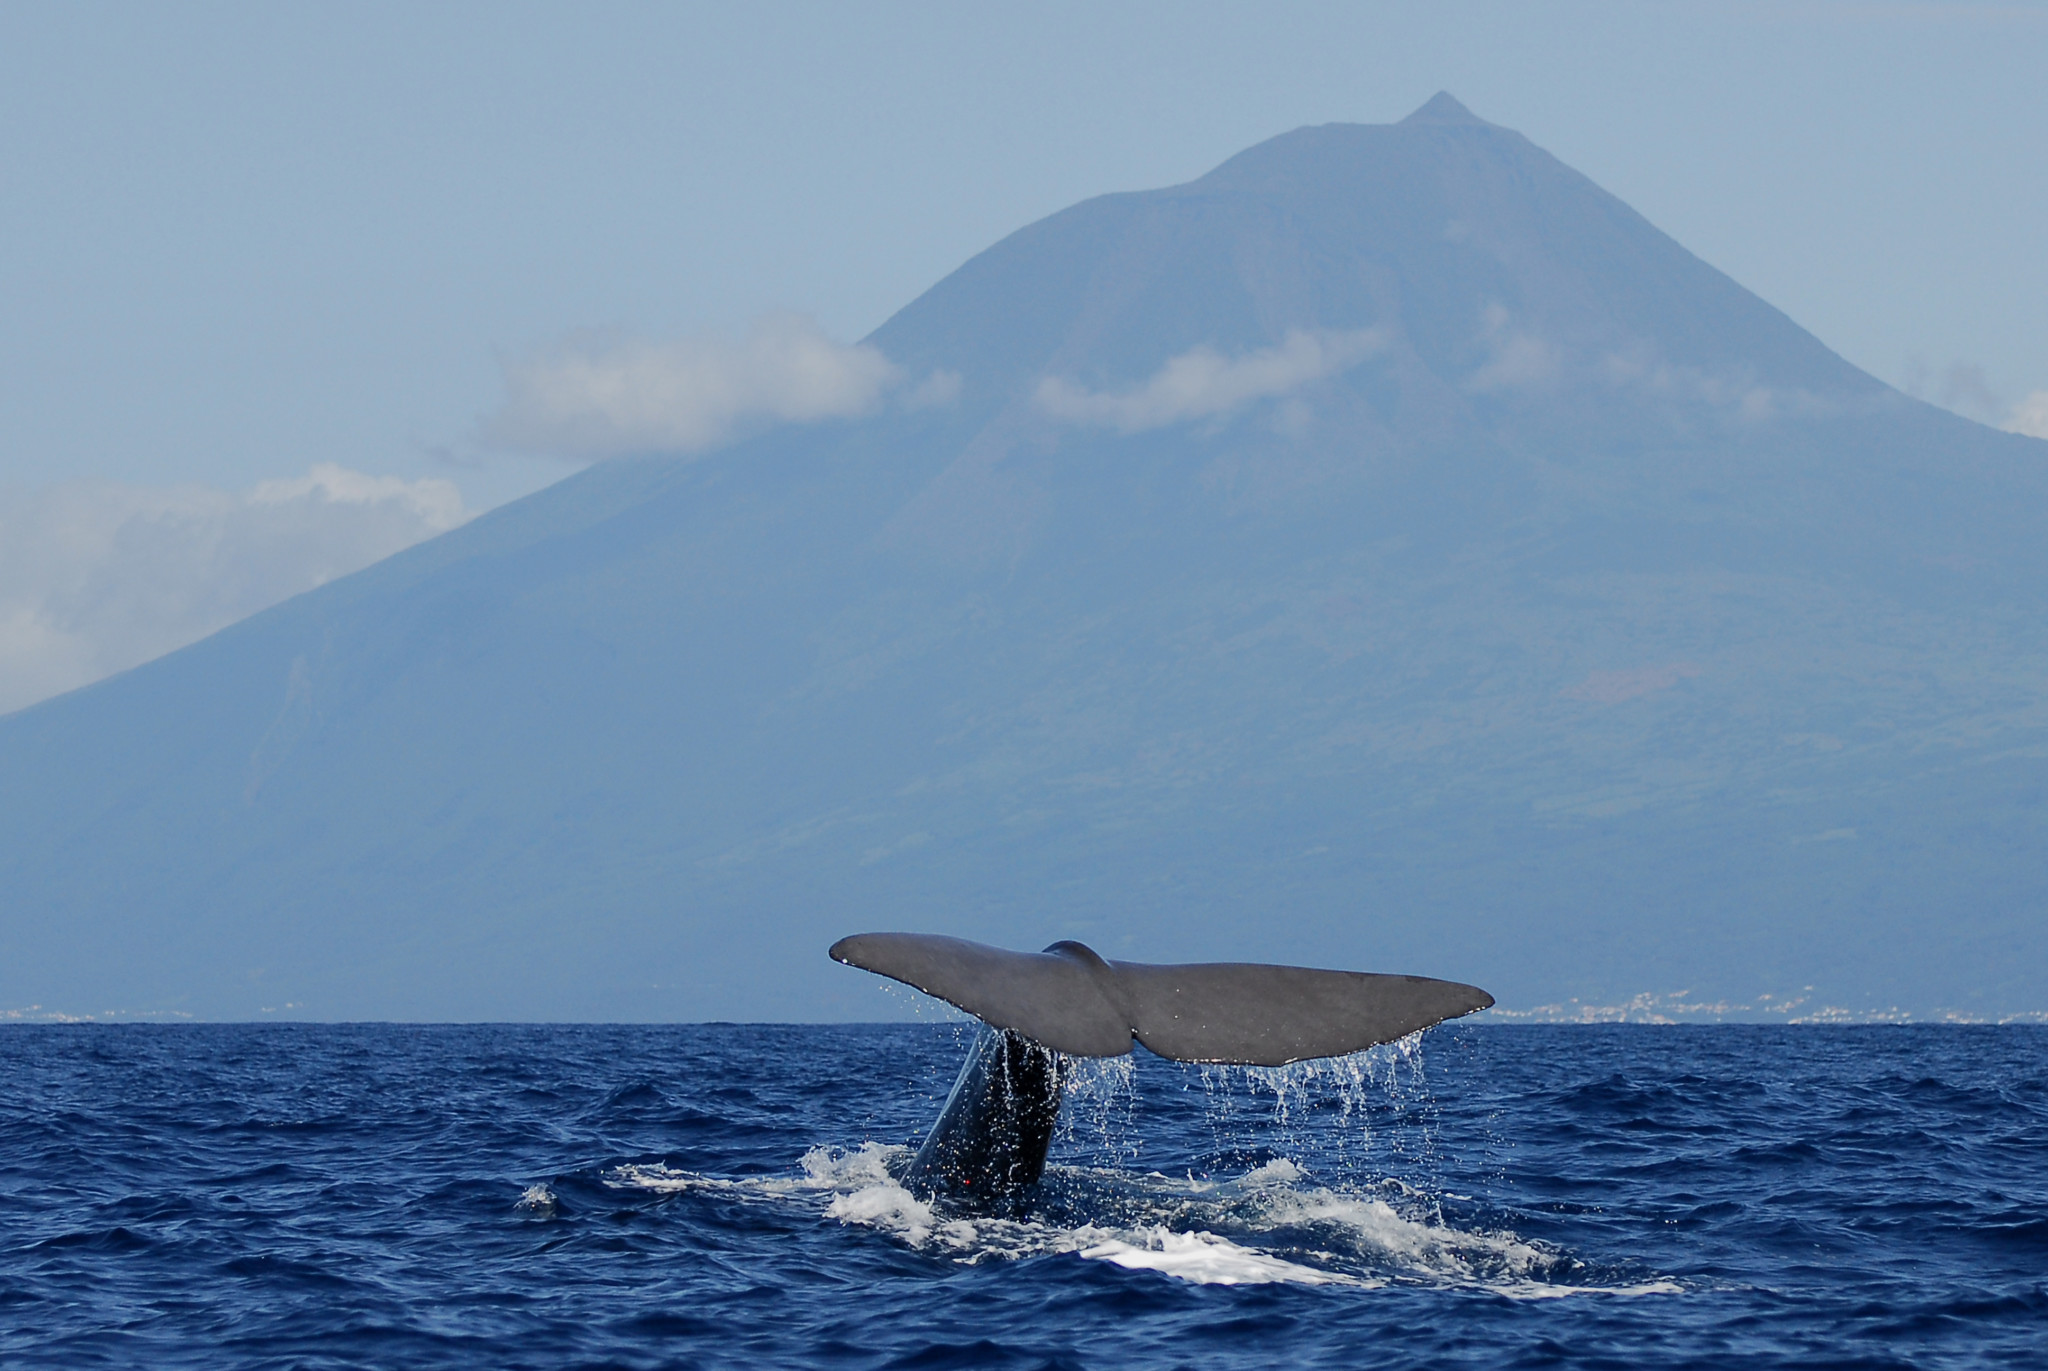 5) Whale Watching